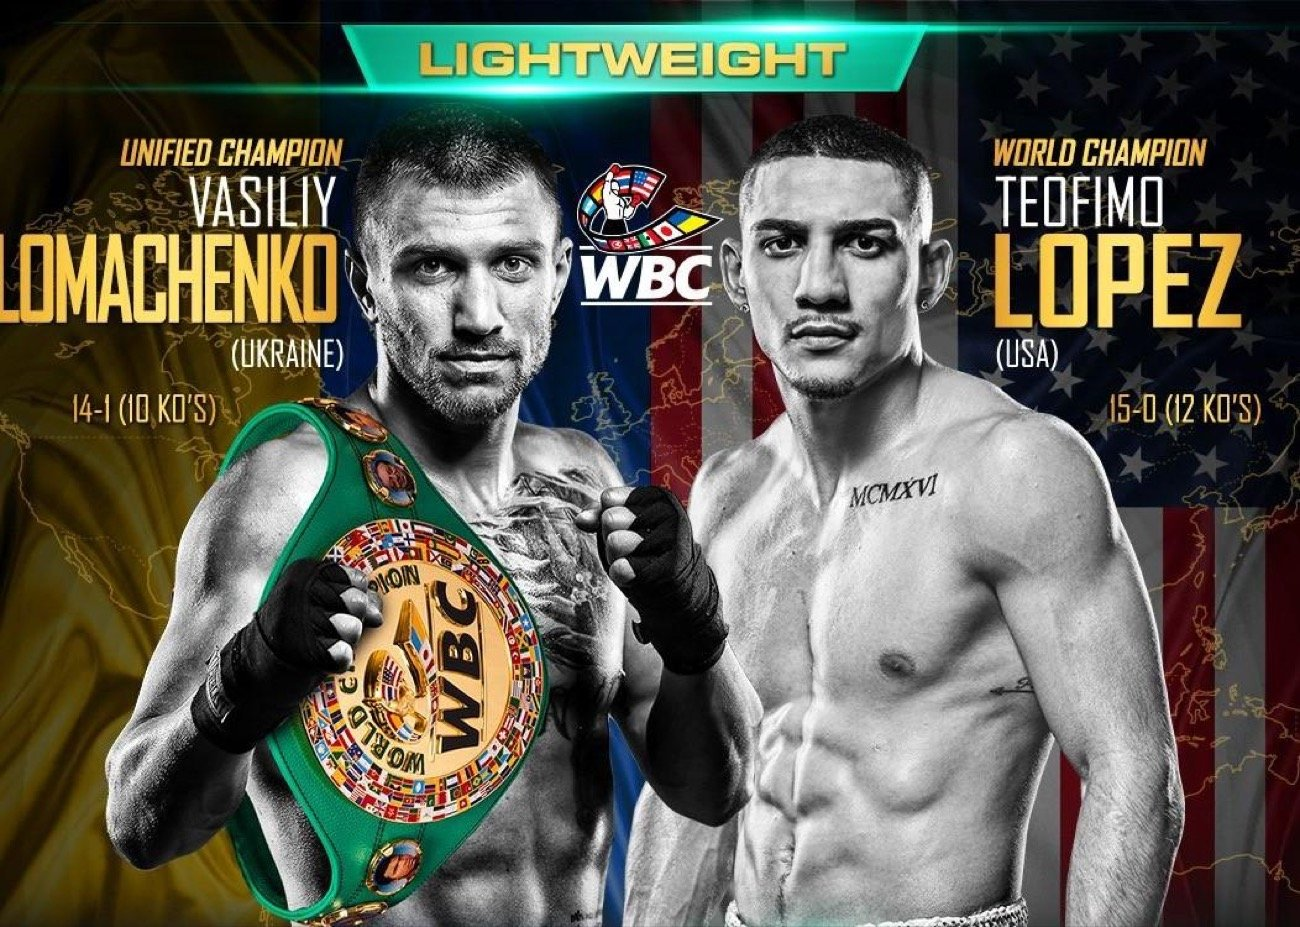 Teofimo Lopez, Vasiliy Lomachenko - The biggest boxing event of the fall airs live on ESPN, this Saturday, October 17 when WBC Franchise /WBA /WBO world champion Vasiliy Lomachenko and IBF kingpin Teofimo Lopez, clash in a lightweight unification showdown live from the MGM Grand Hotel & Casino in Las Vegas. Live coverage begins at 7:30 p.m. ET, with undercard action on ESPN, ESPN Deportes (in Spanish) and ESPN+ (English and Spanish).